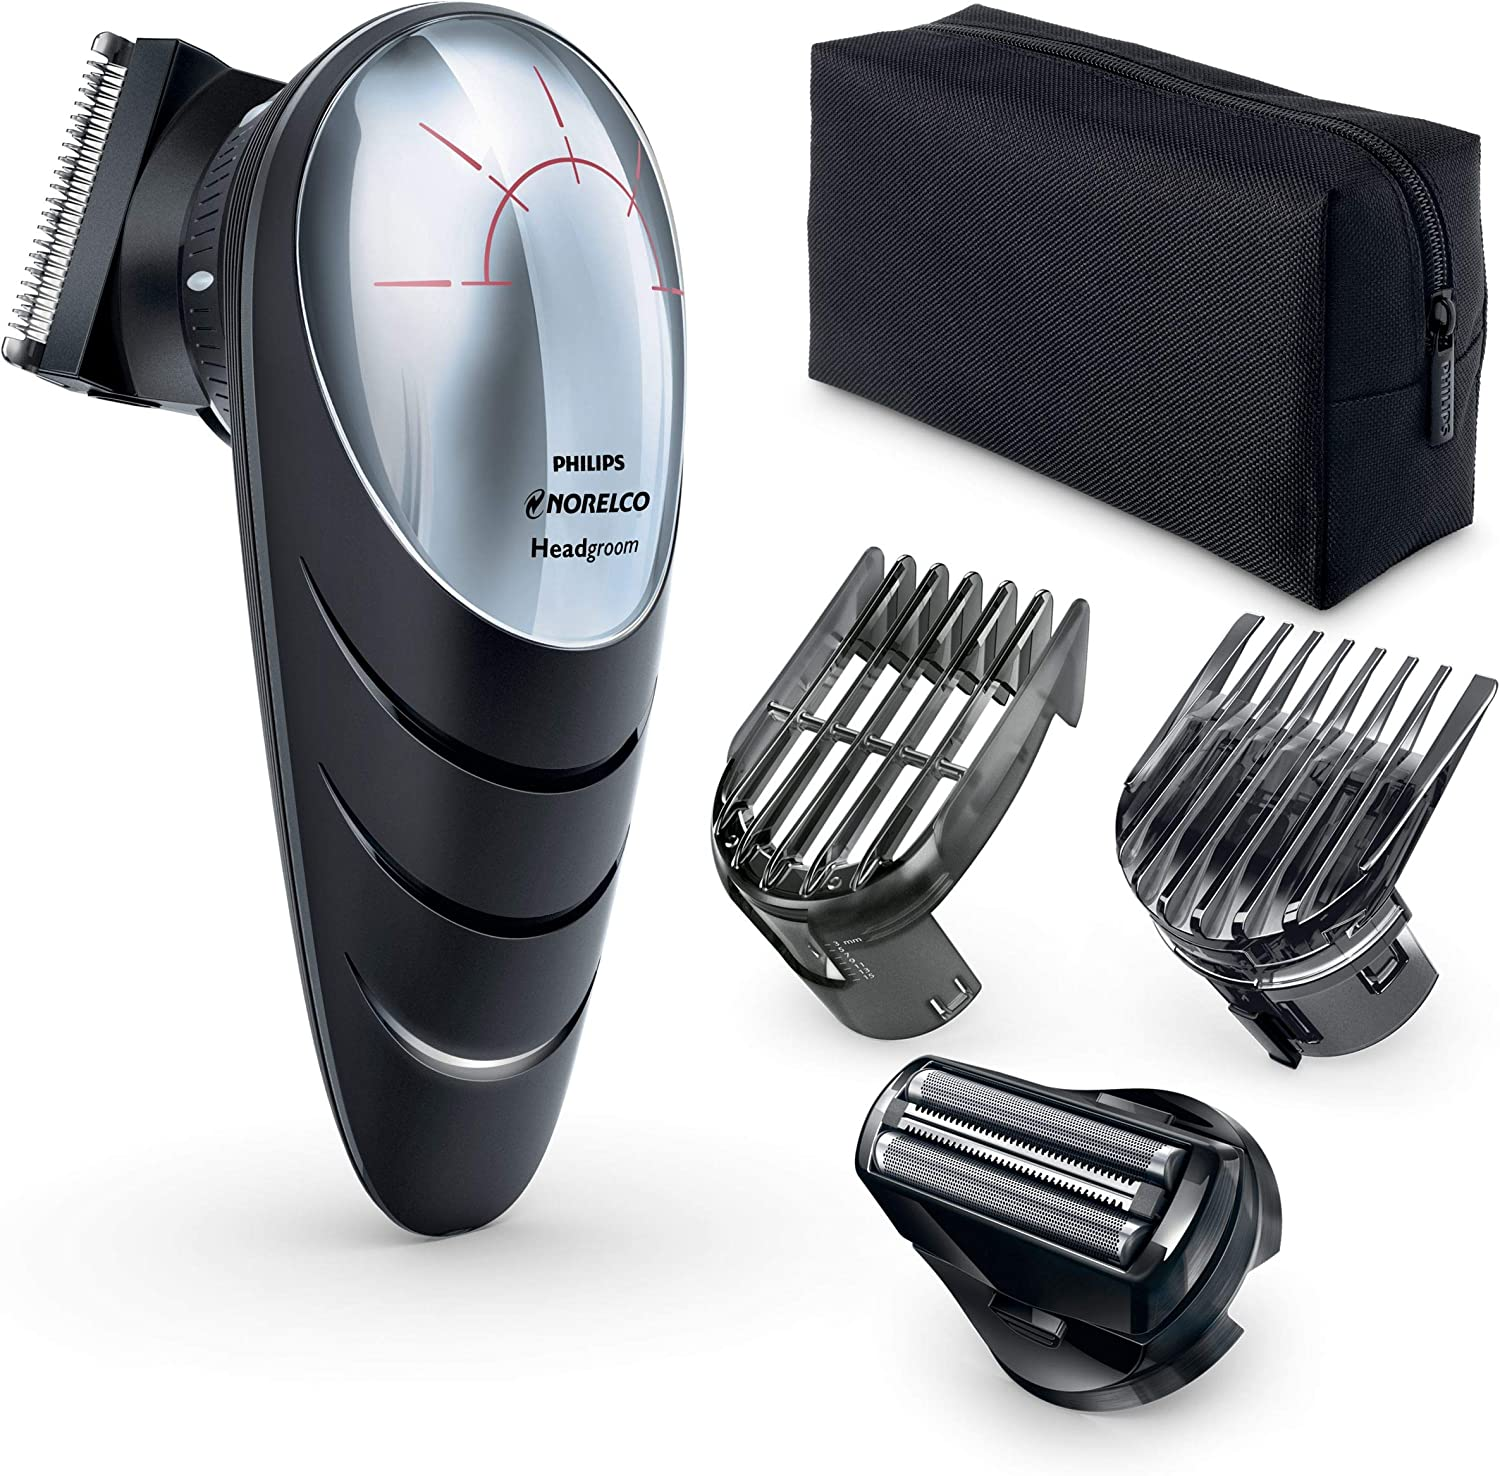 Philips Norelco Qc10/10 Do-It-Yourself Hair Clipper Pro